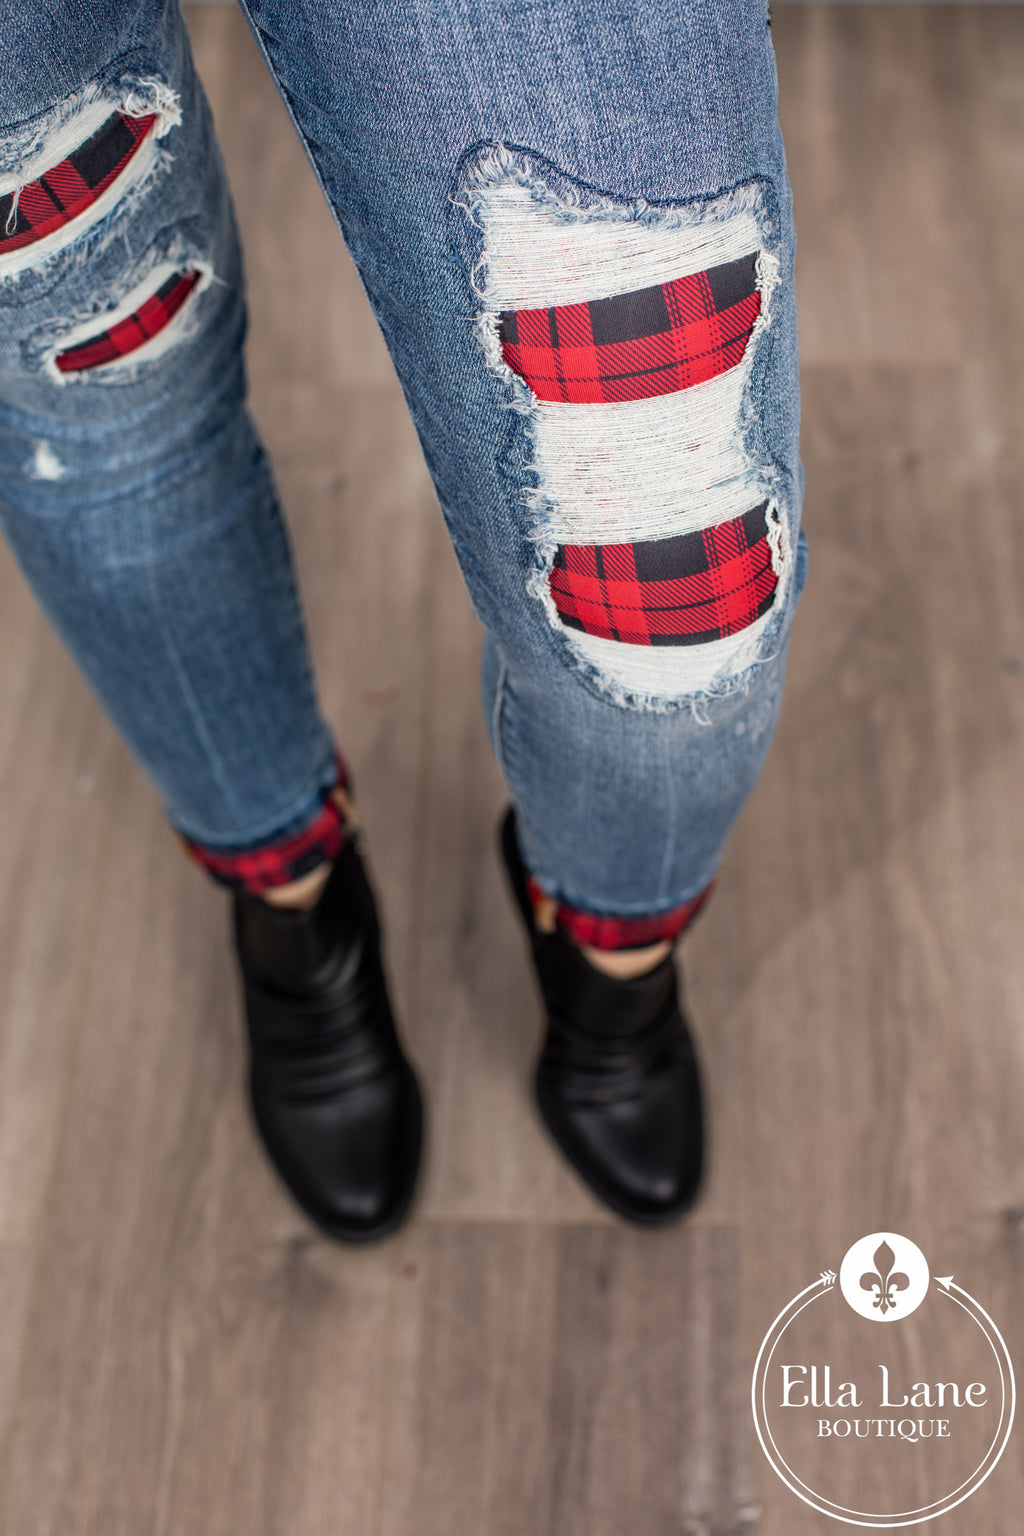 JB Buffalo Plaid Patch and Cuffed Skinny Jeans